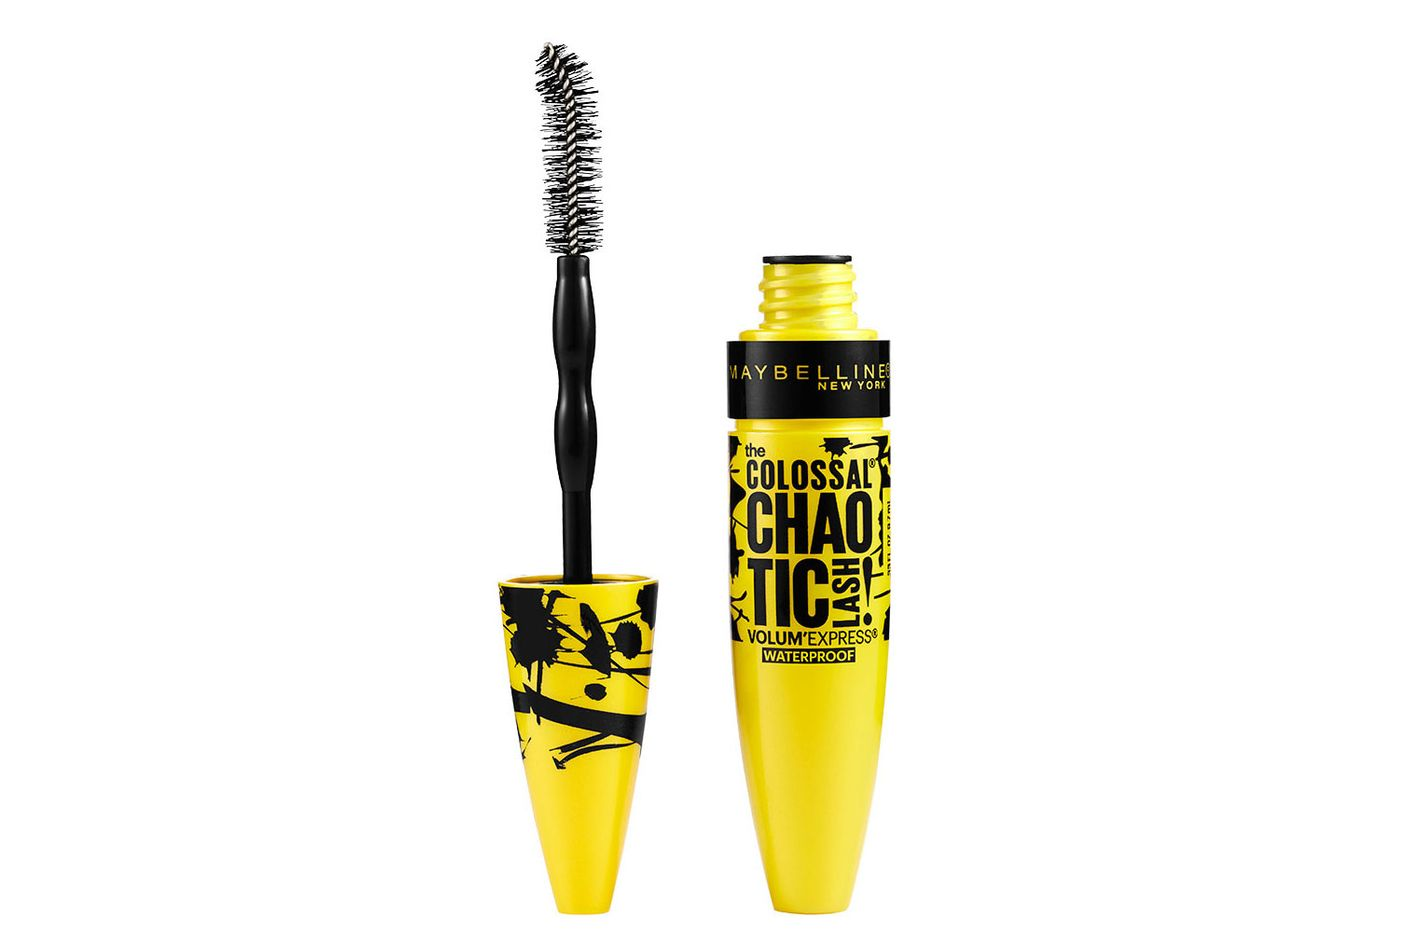 be9121aac80 Maybelline Volum' Express The Colossal Spider Effect Mascara